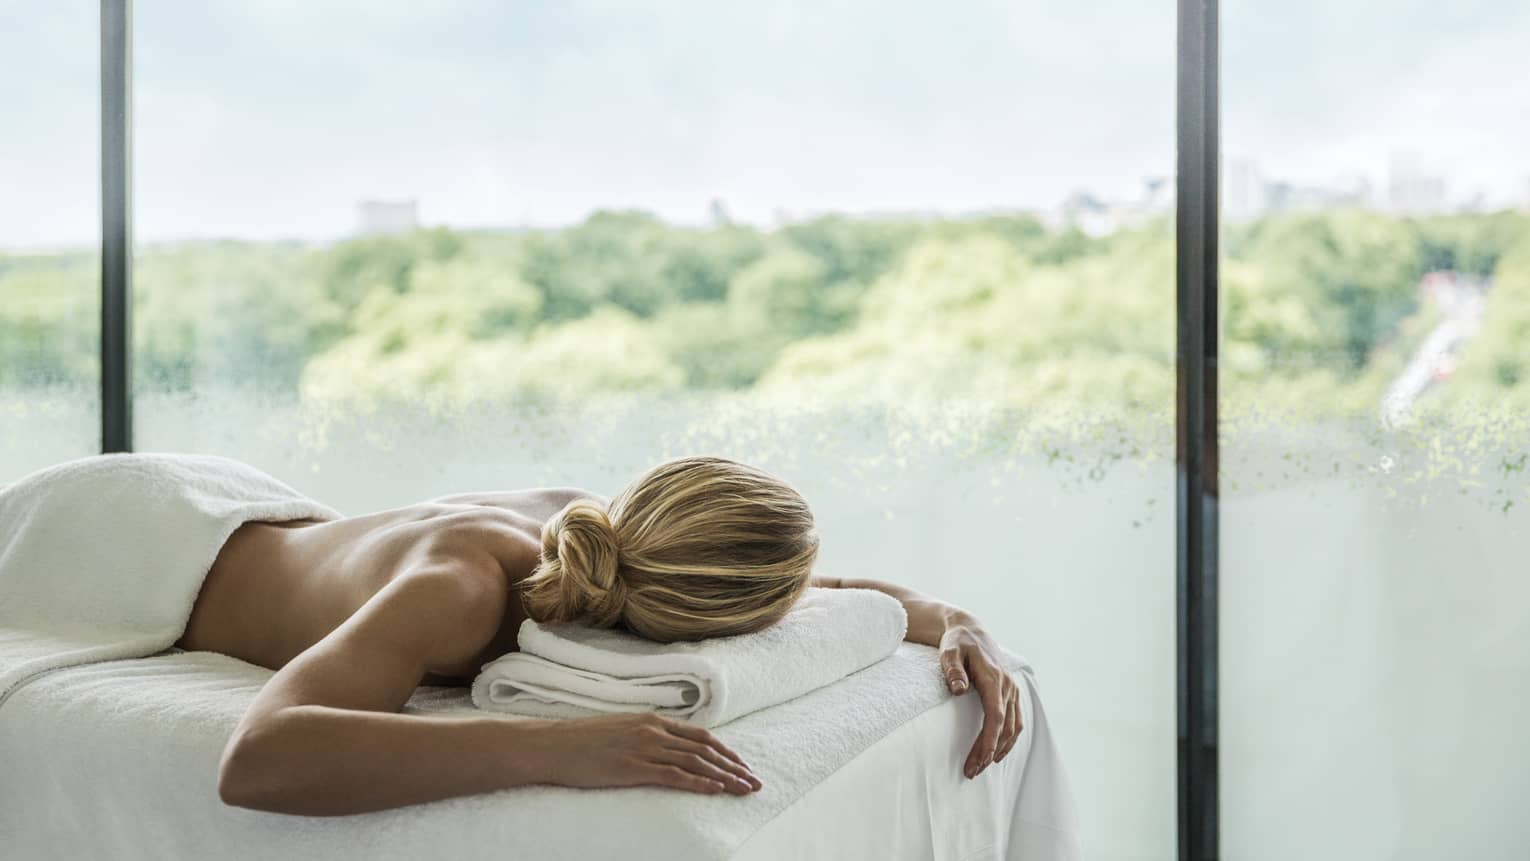 Woman lying face-down on massage table in front of sunny window